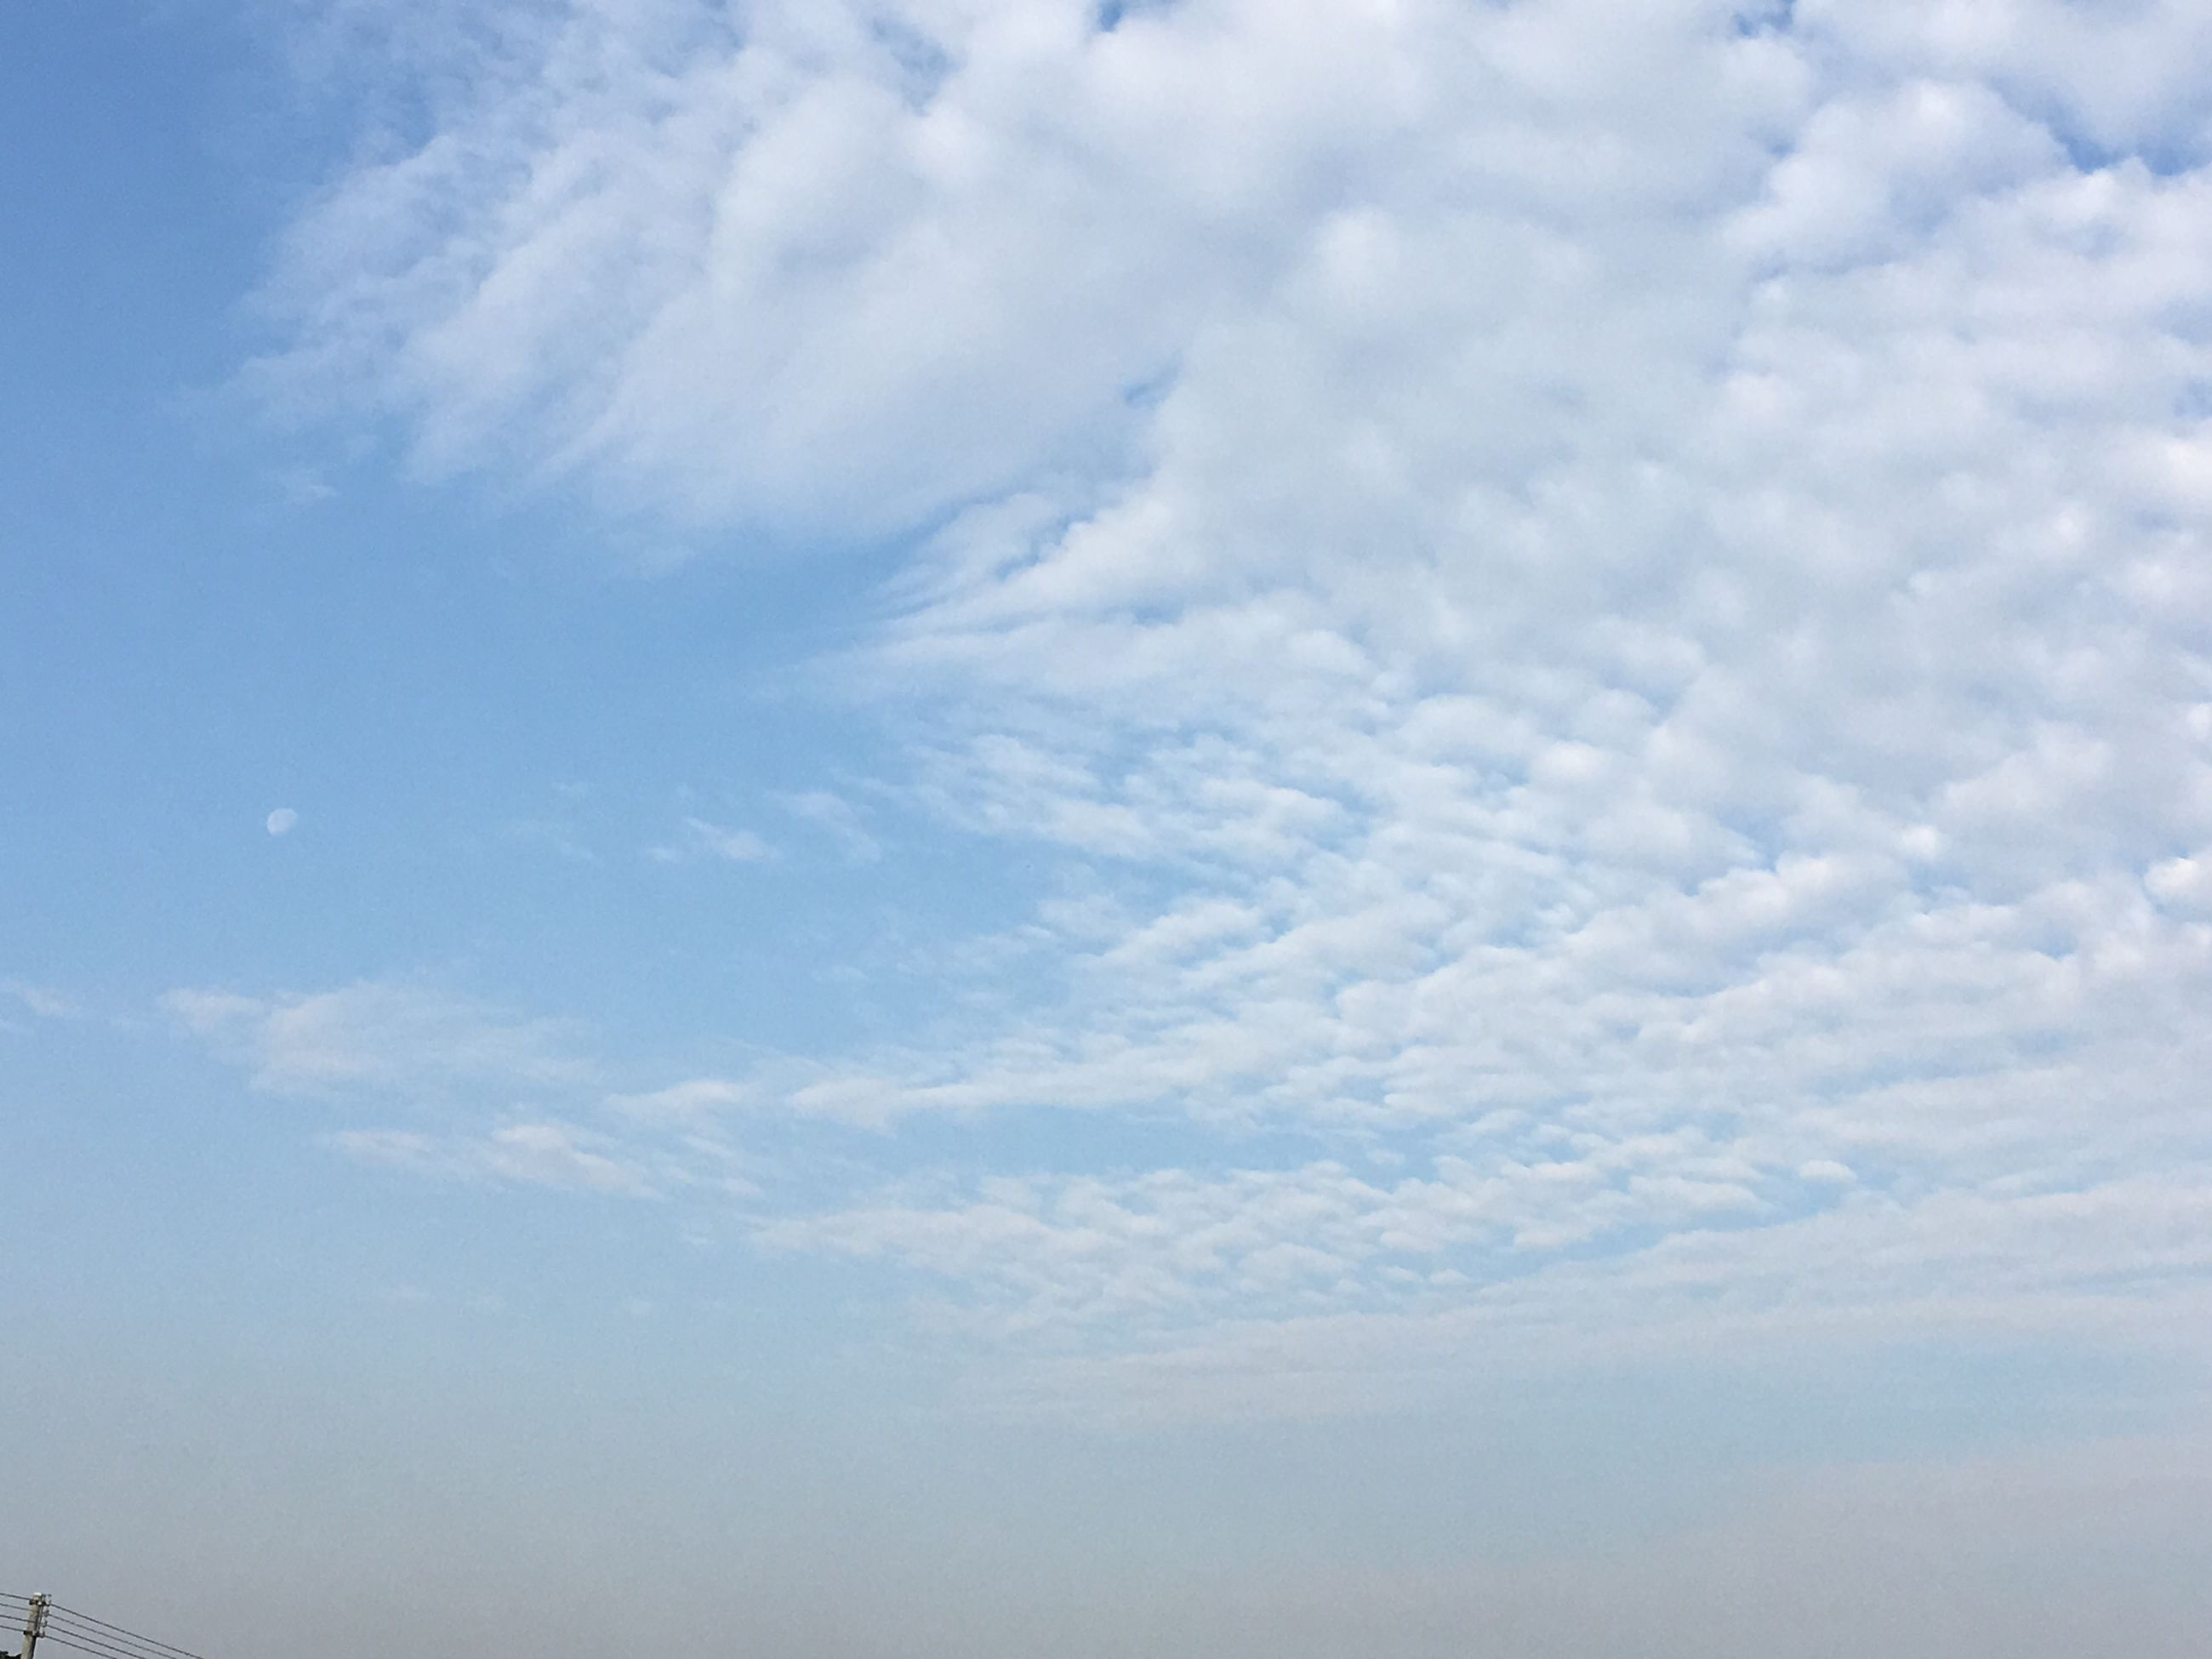 nature, sky, low angle view, beauty in nature, tranquility, no people, scenics, day, outdoors, backgrounds